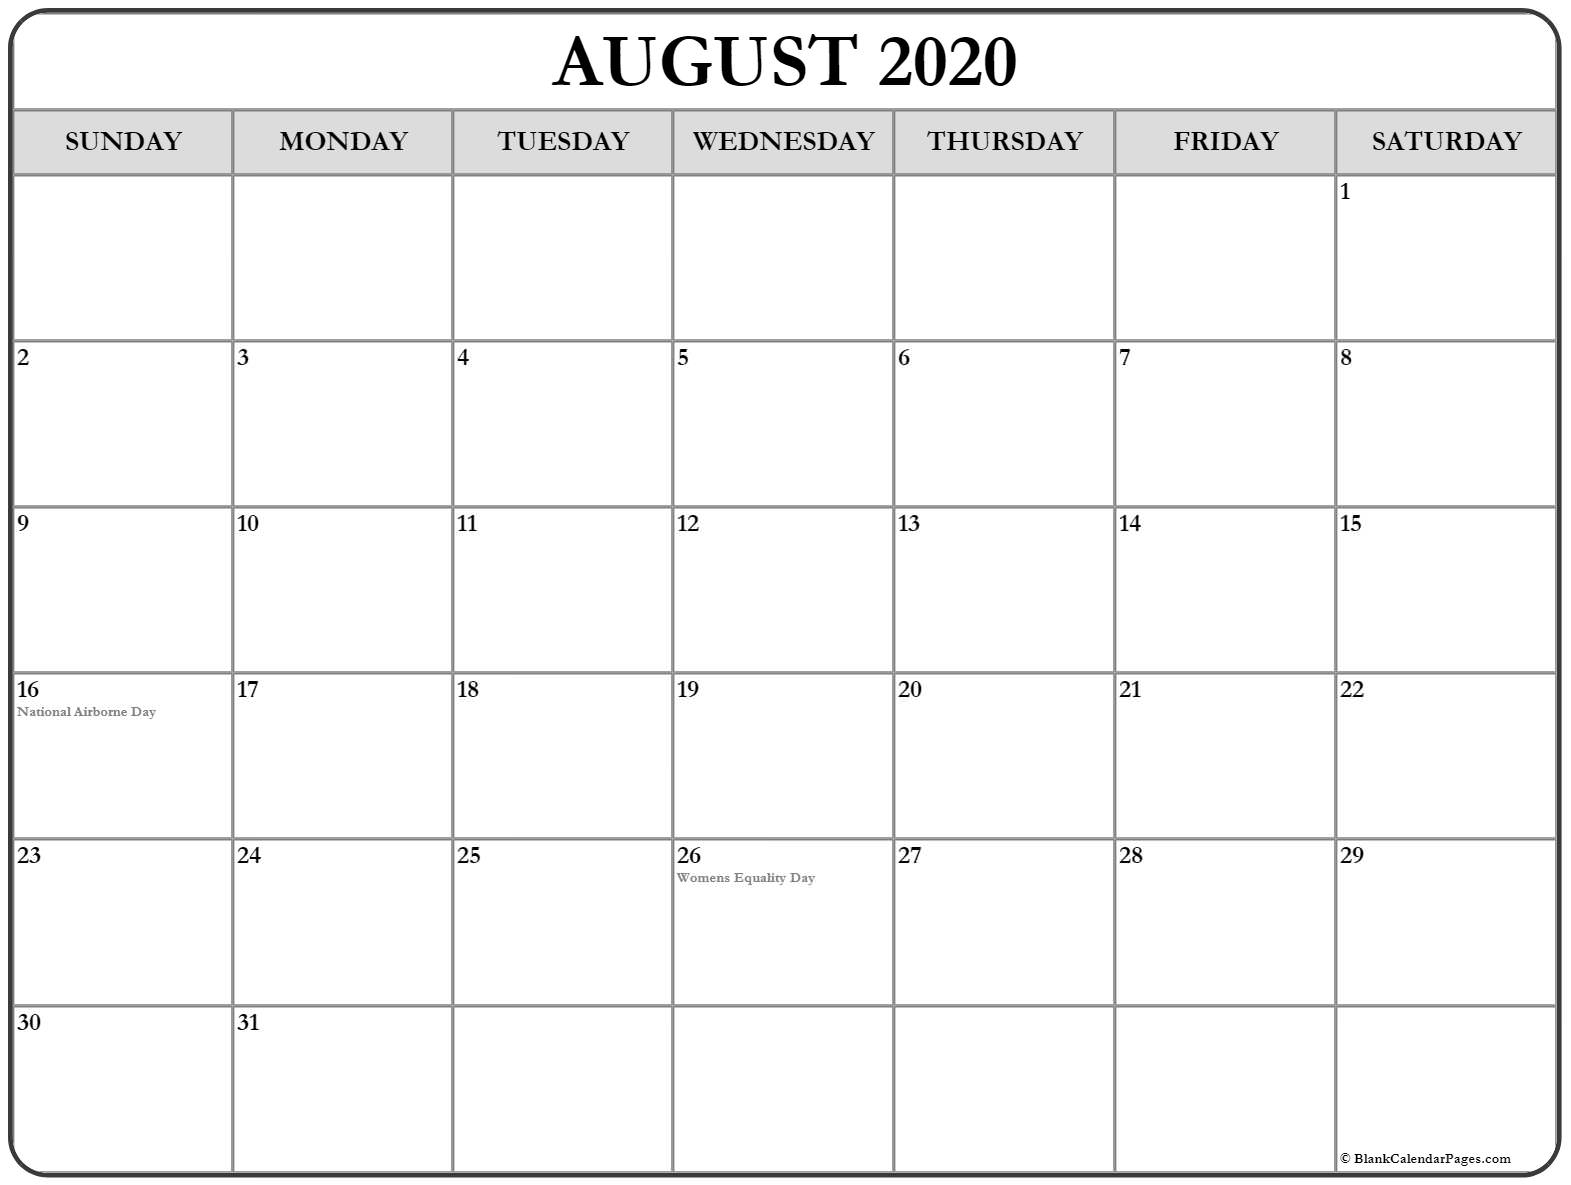 Collection Of August 2020 Calendars With Holidays